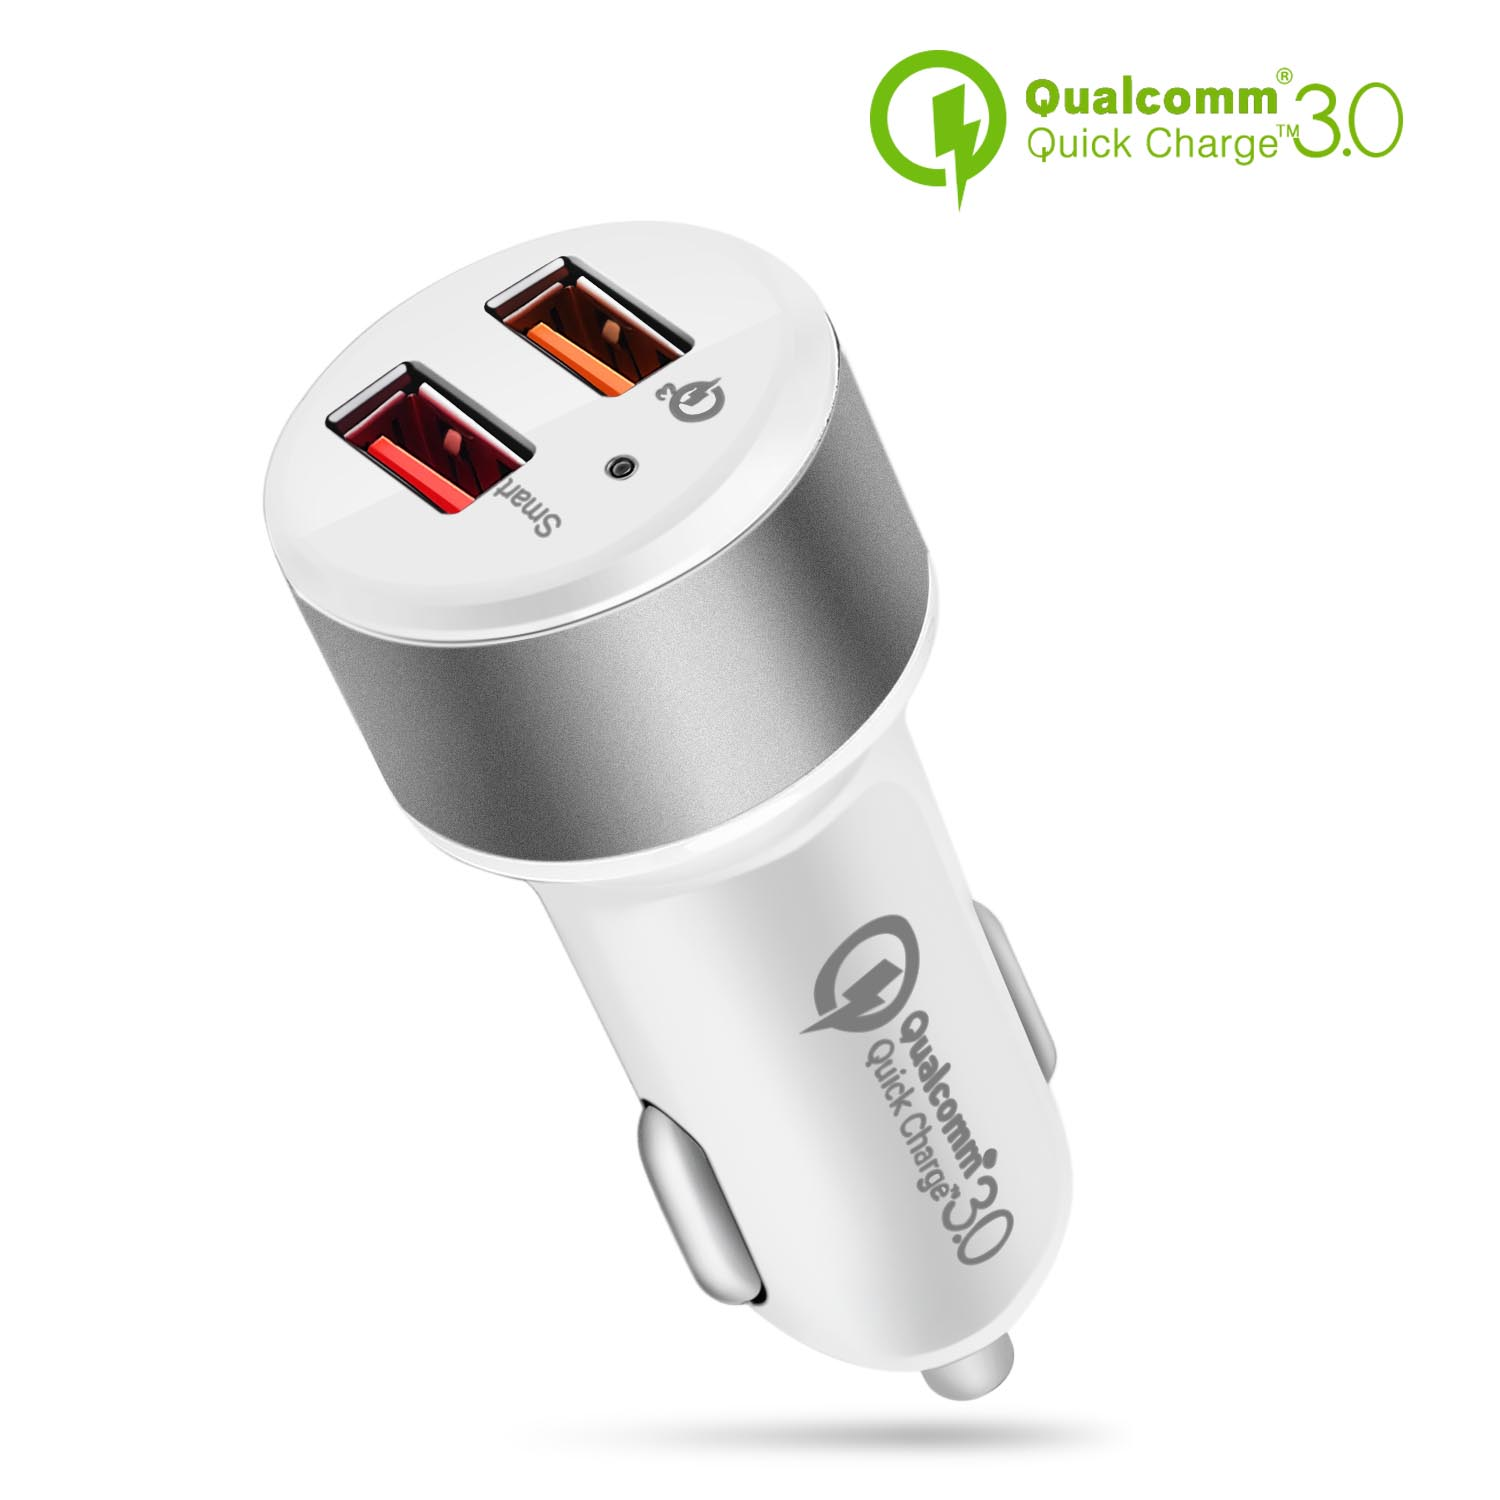 Quick Charge 3.0 Car Charger Galaxy S20 S10 S9 S8 S7 Note LG Nexus etc. Compatible with Any iPhone 18W//3A Single USB Port QC 3.0 Car Charger Adapter